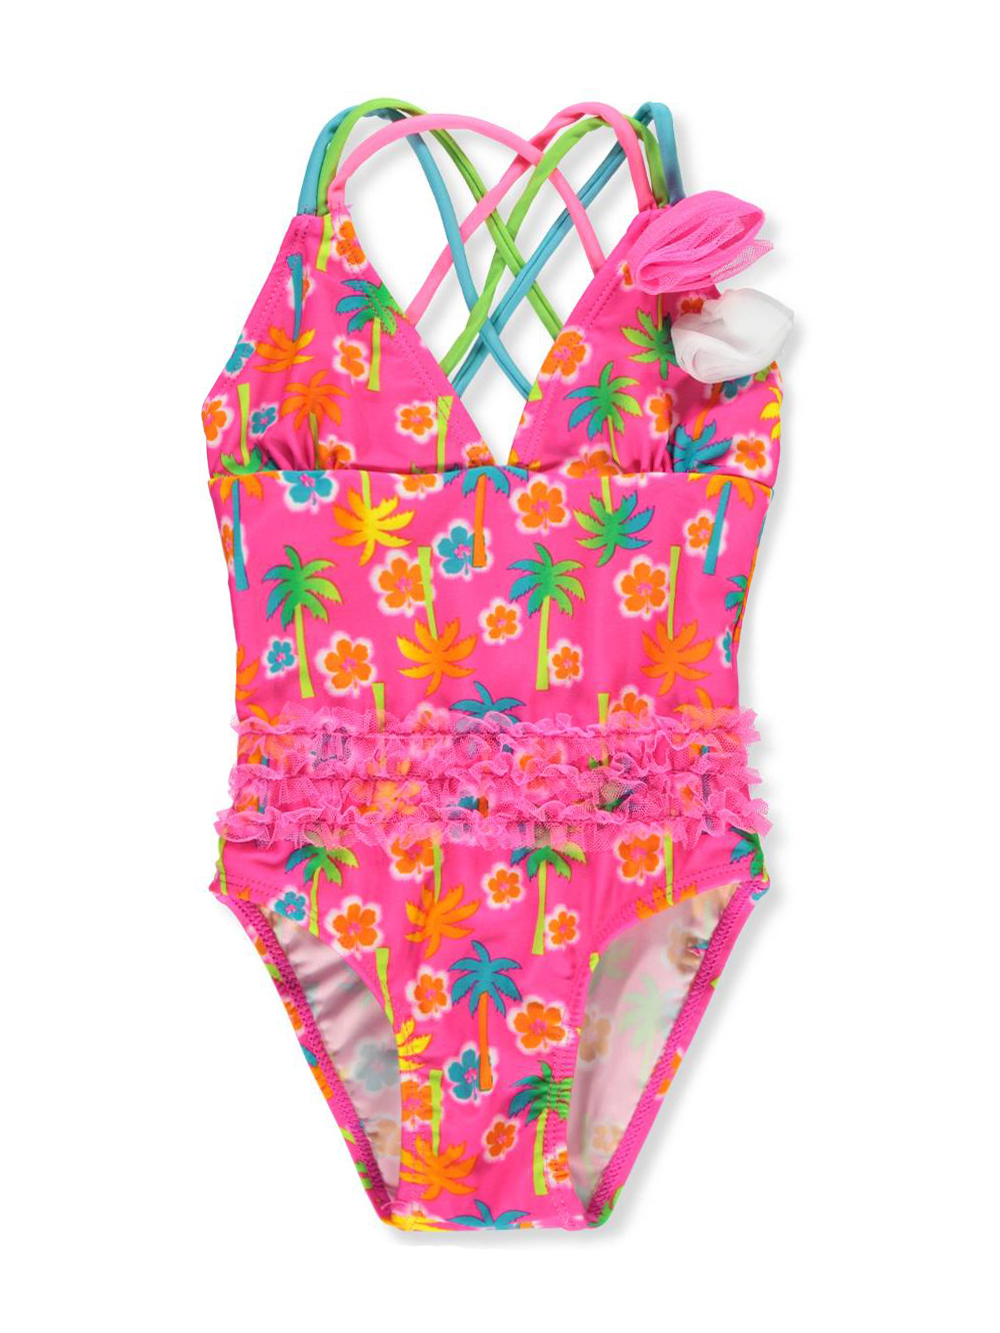 547871f452 Real Love Baby Girls' 1-Piece Swimsuit